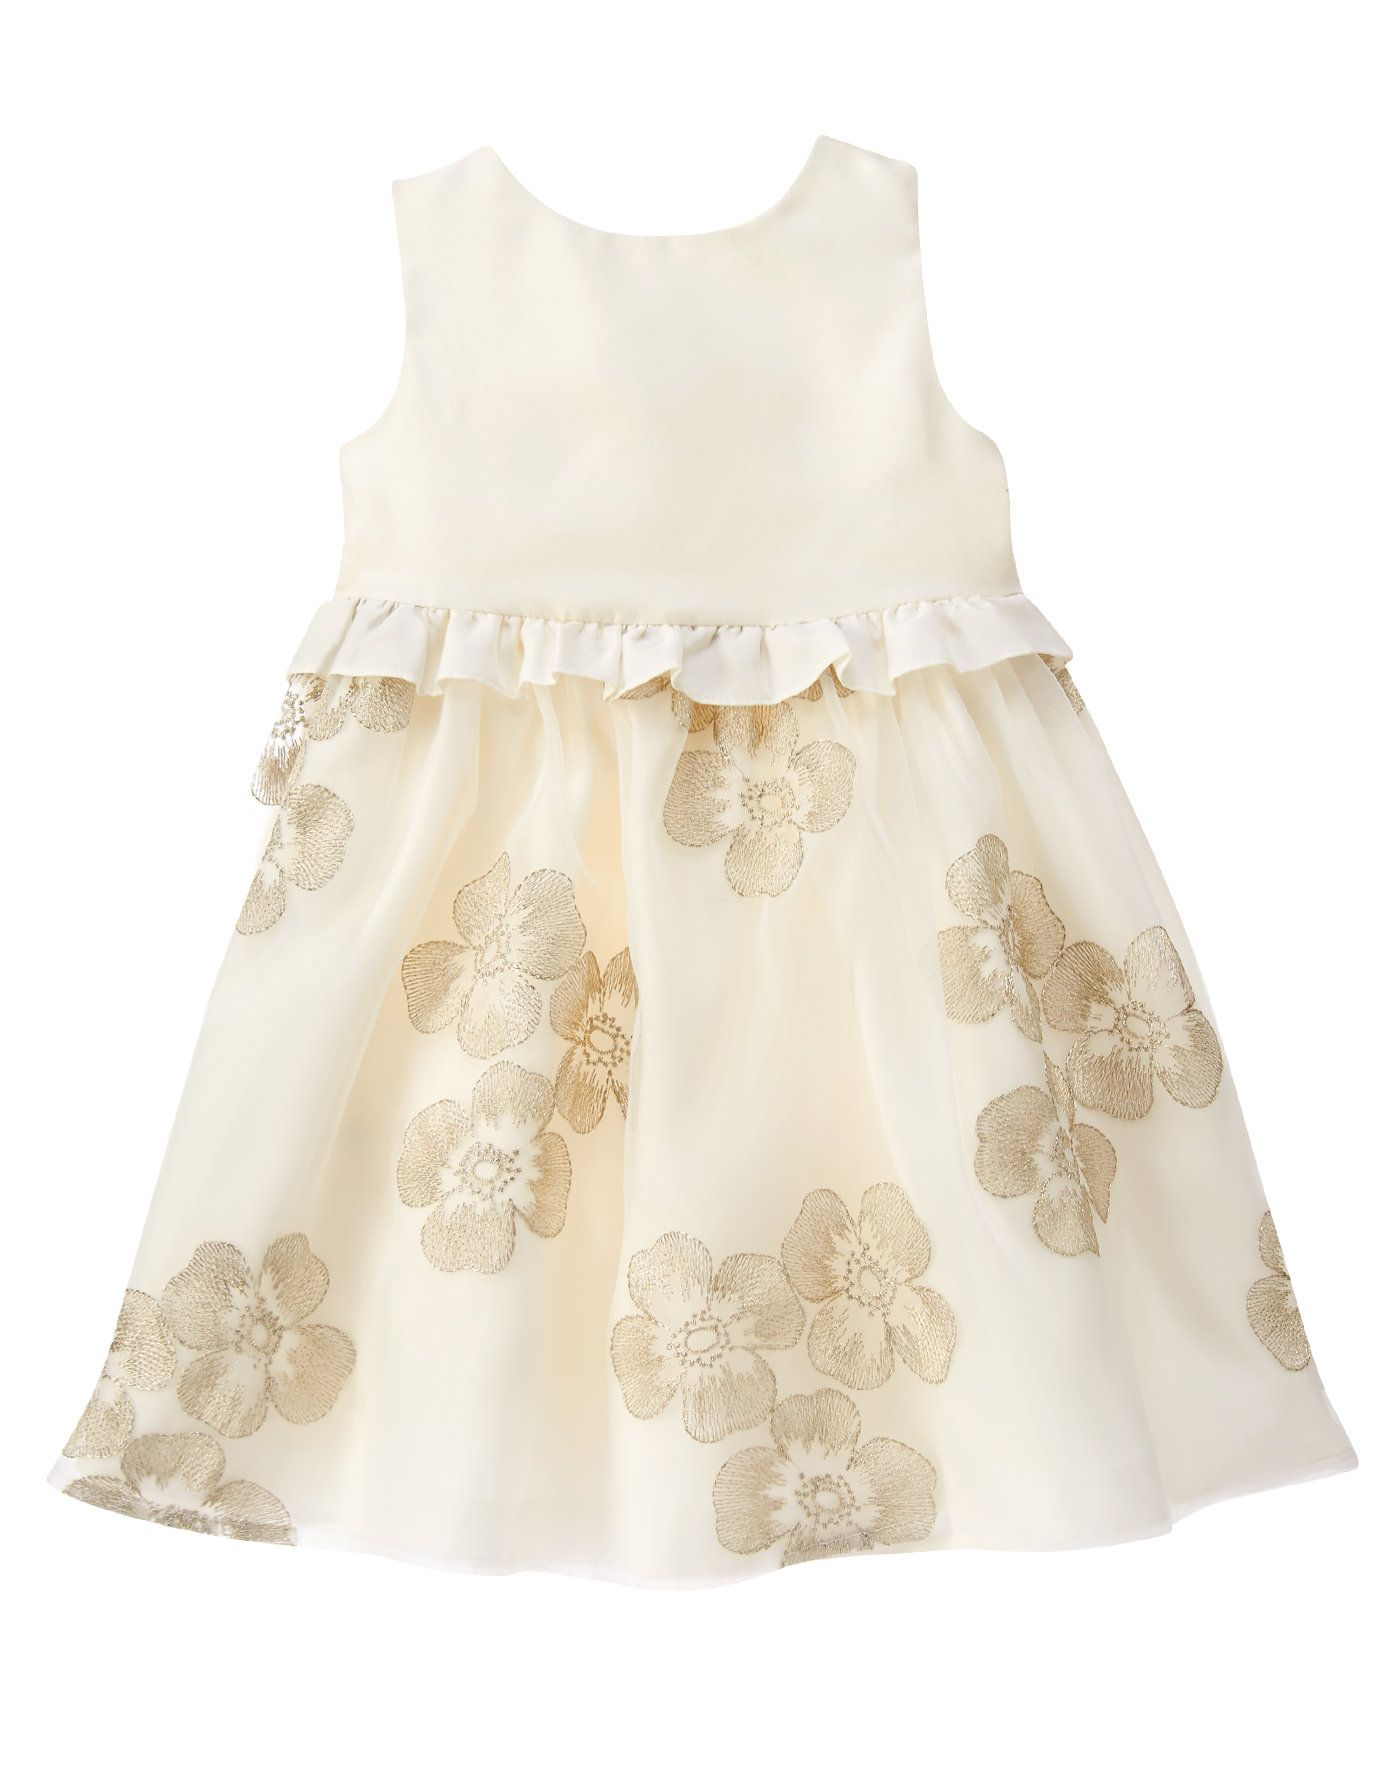 a6bb37e4f1 Floral Embroidered Dress at Gymboree Toddler Fashion